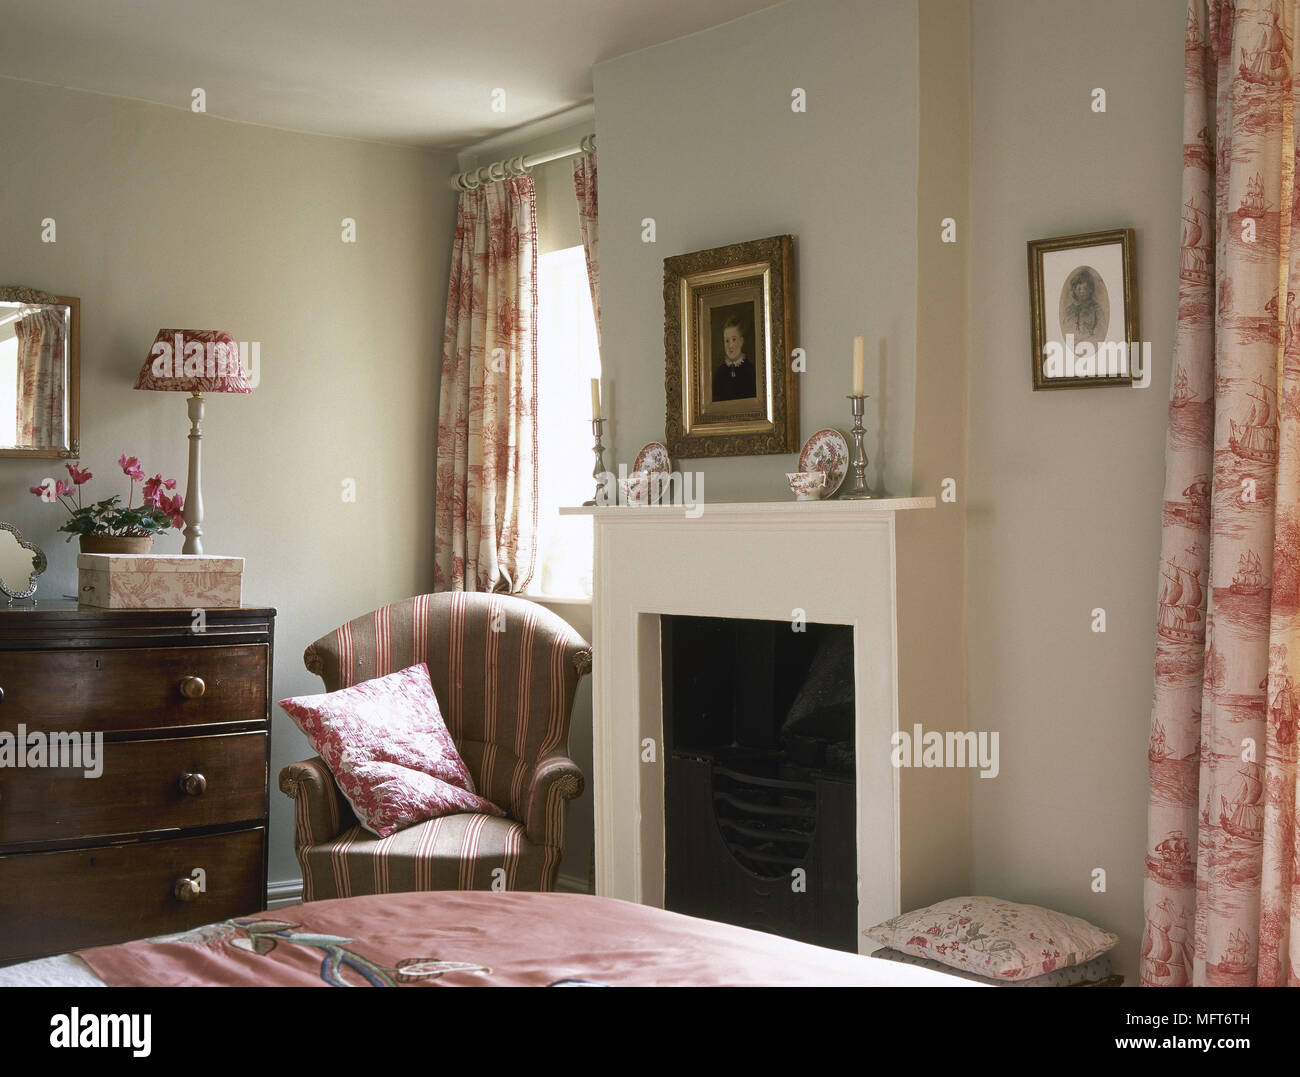 Bedroom With Red Toile De Jouy Curtains And Simple White Fireplace